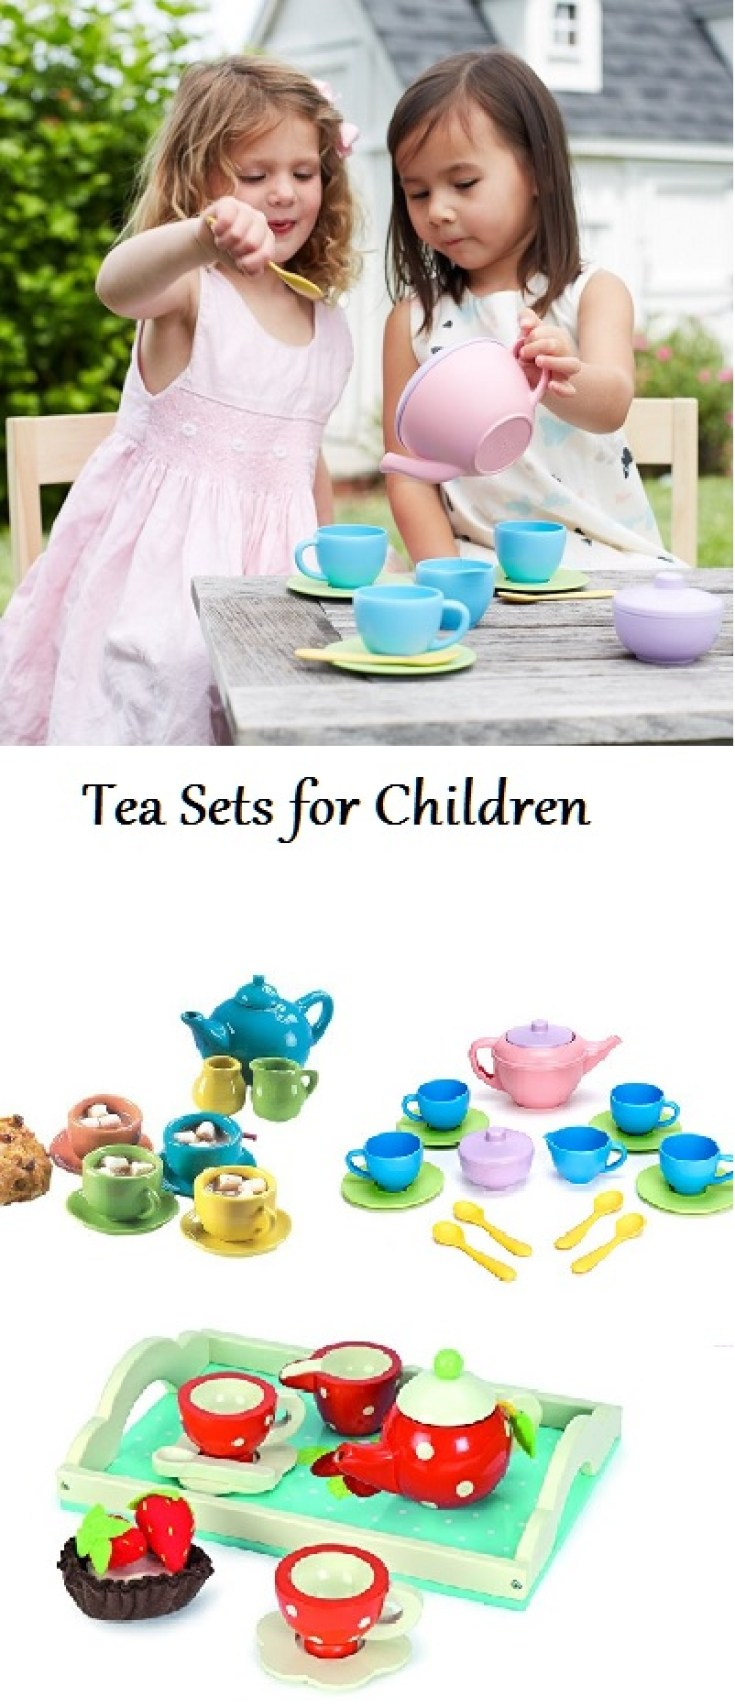 Toy Tea Sets